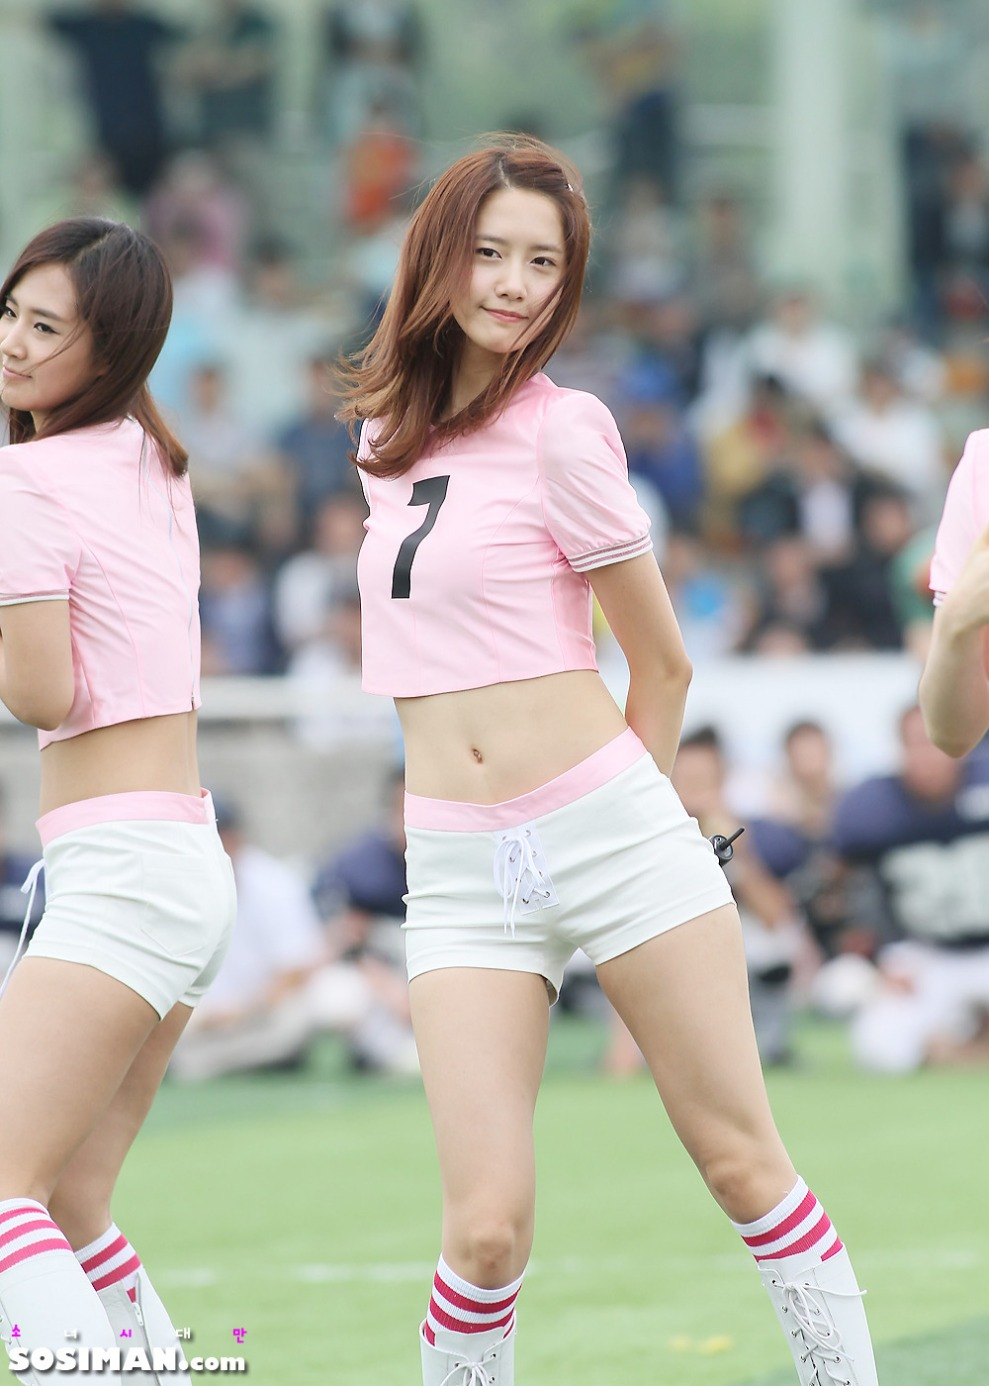 [Photos] 2010.05.21 Yoona at Namyangju Central Football Game